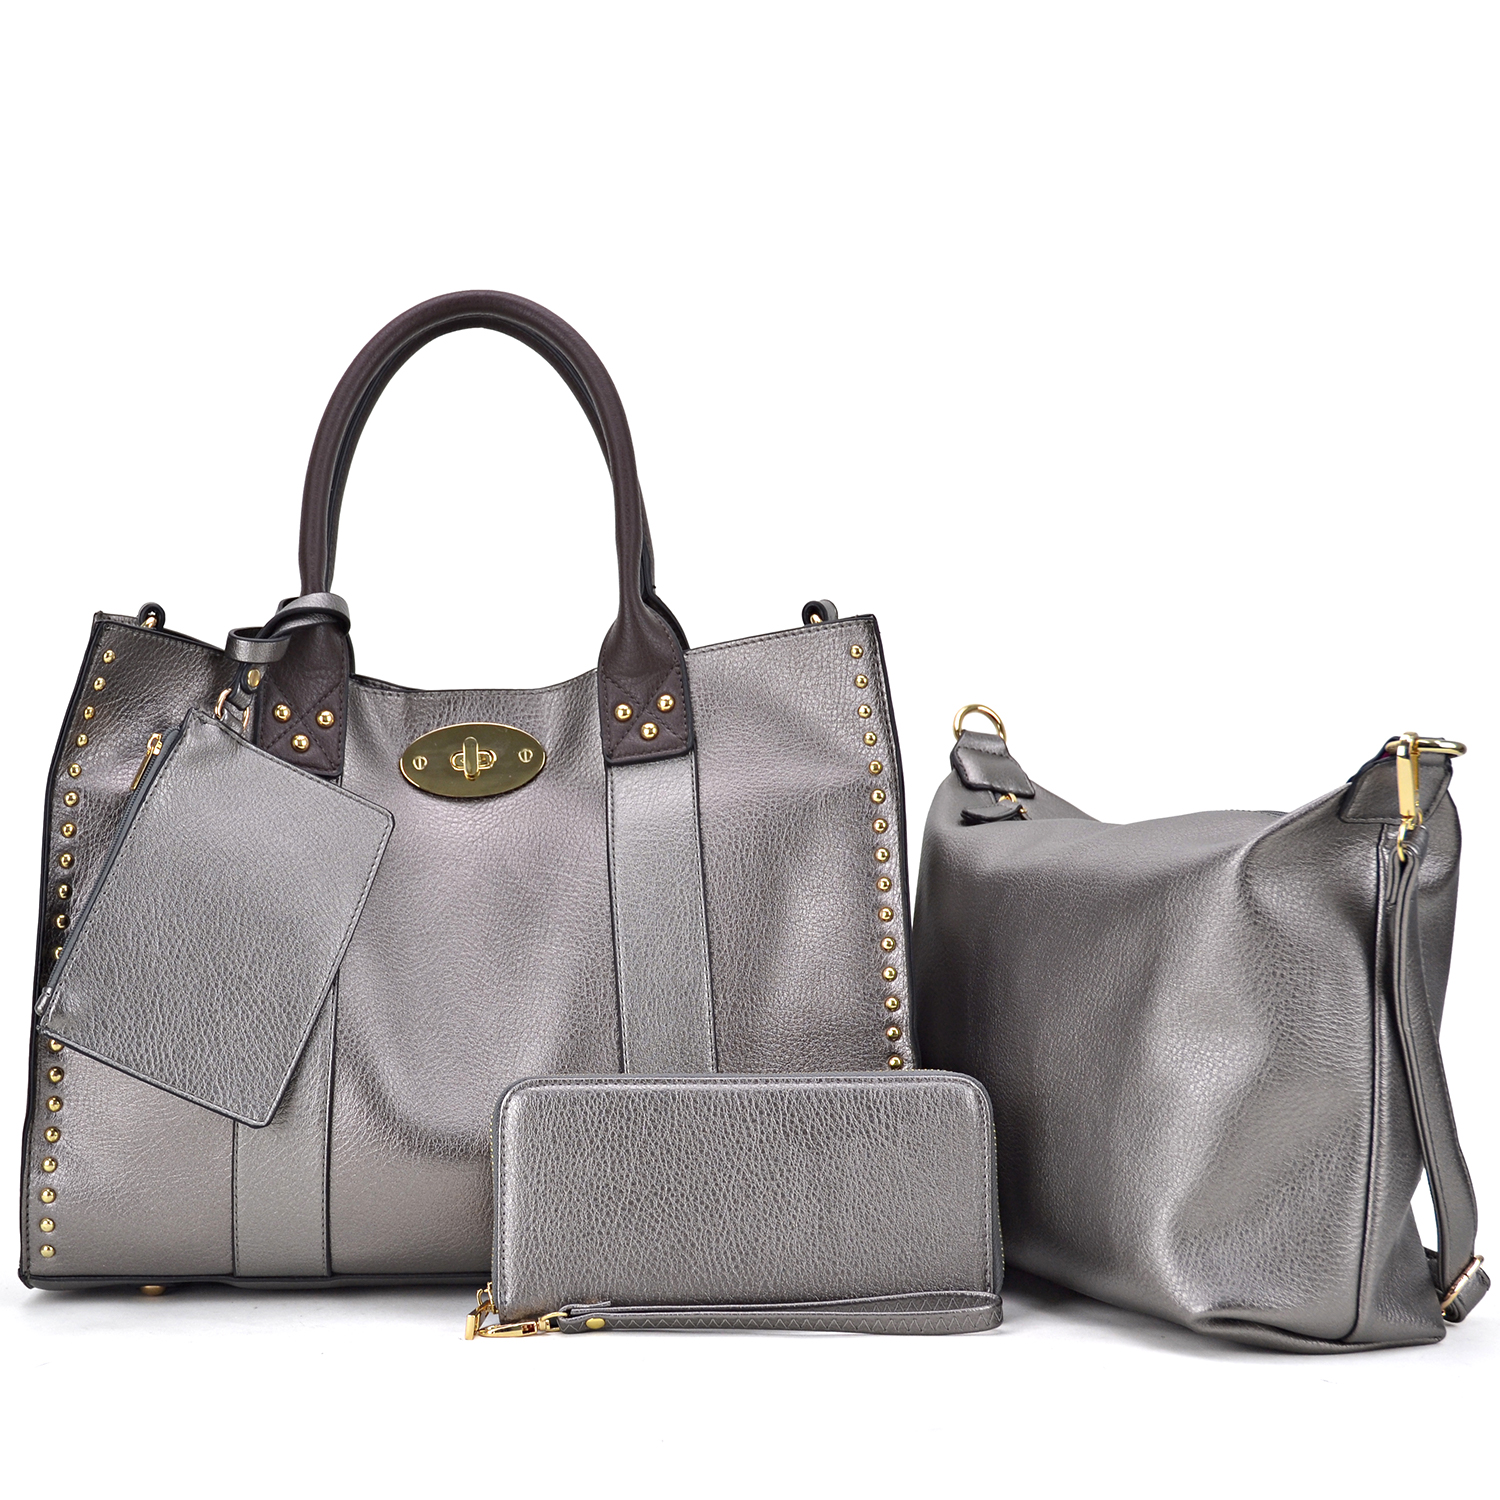 4-in-1 Large Studded Tote with Twist lock closure and a Detachable Organizer Bag/pouch and with Matching Wallet and wristlet